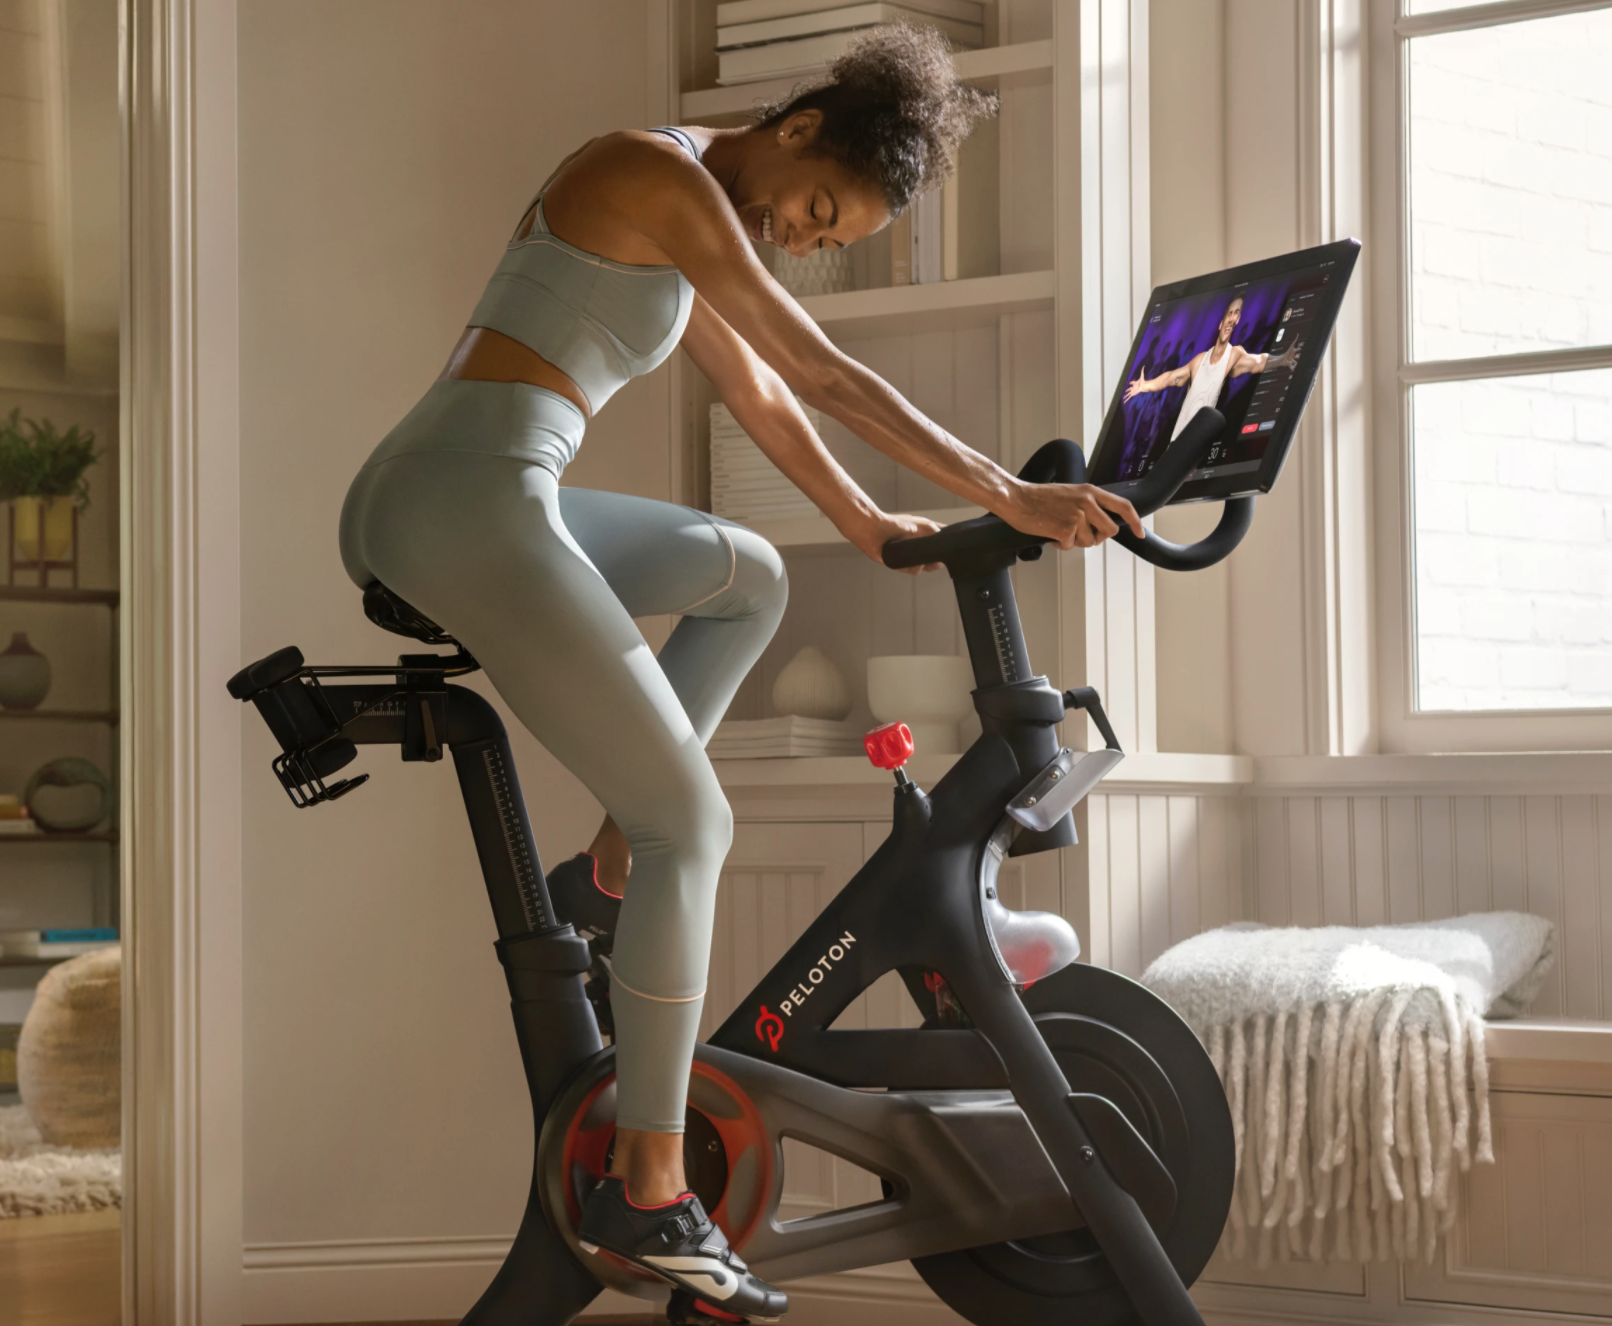 A woman exercises on a Peloton bike in an advertisement for the home fitness brand.